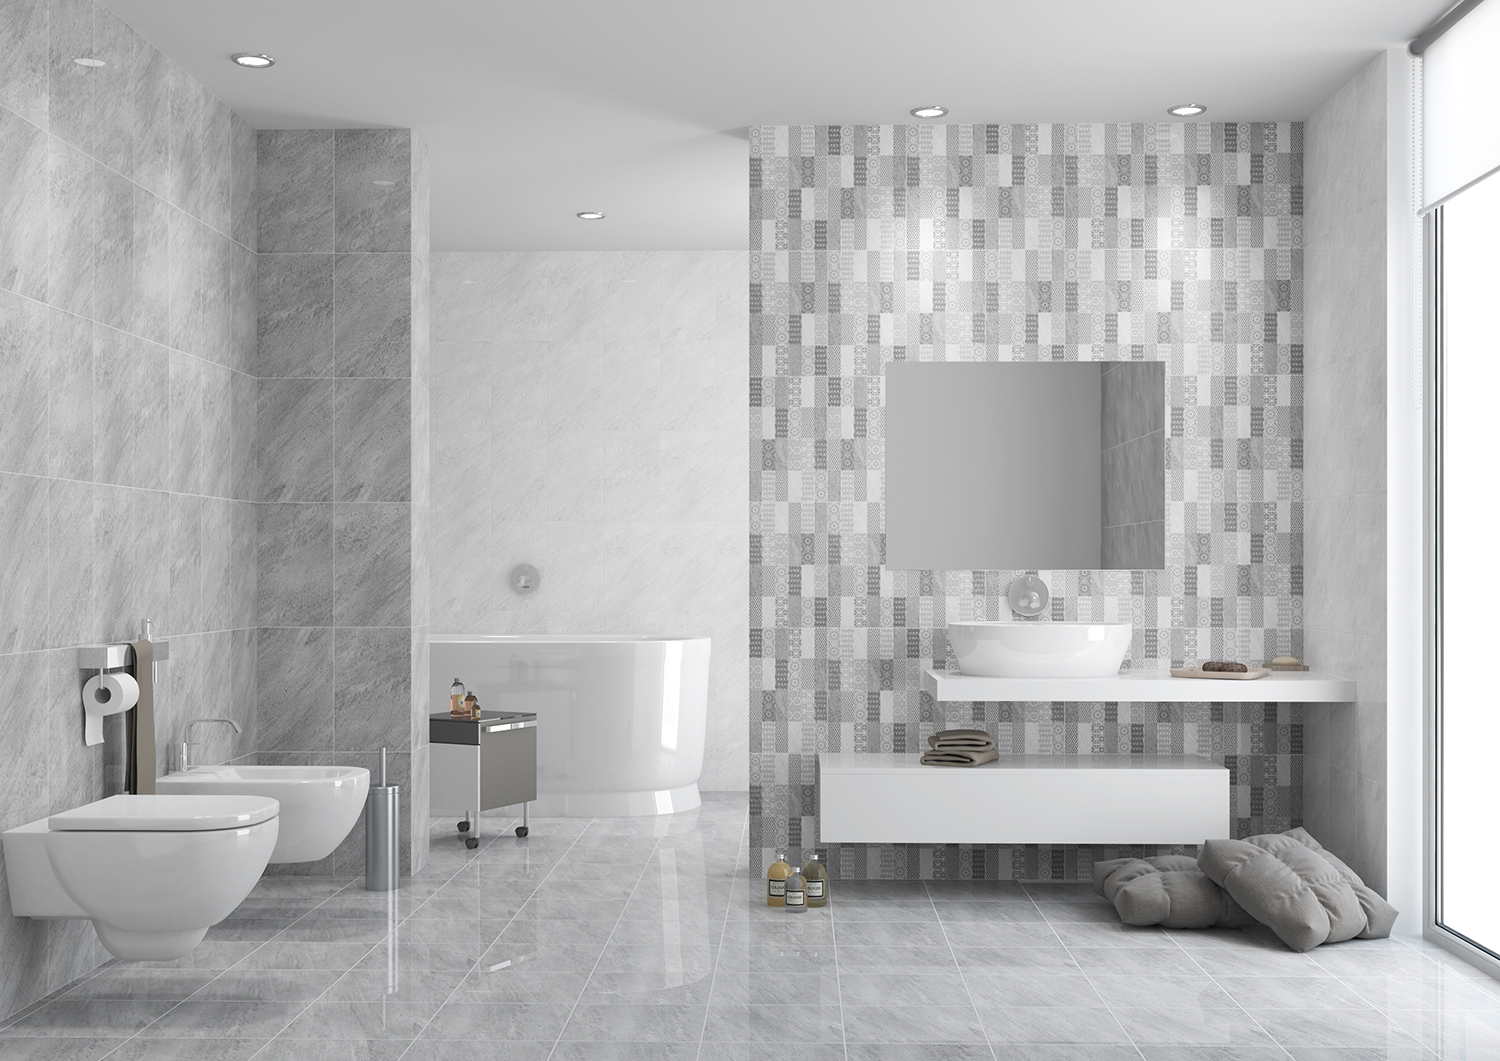 PIETRA,ceramics,ceramic tiles,wall tiles,floor tiles,